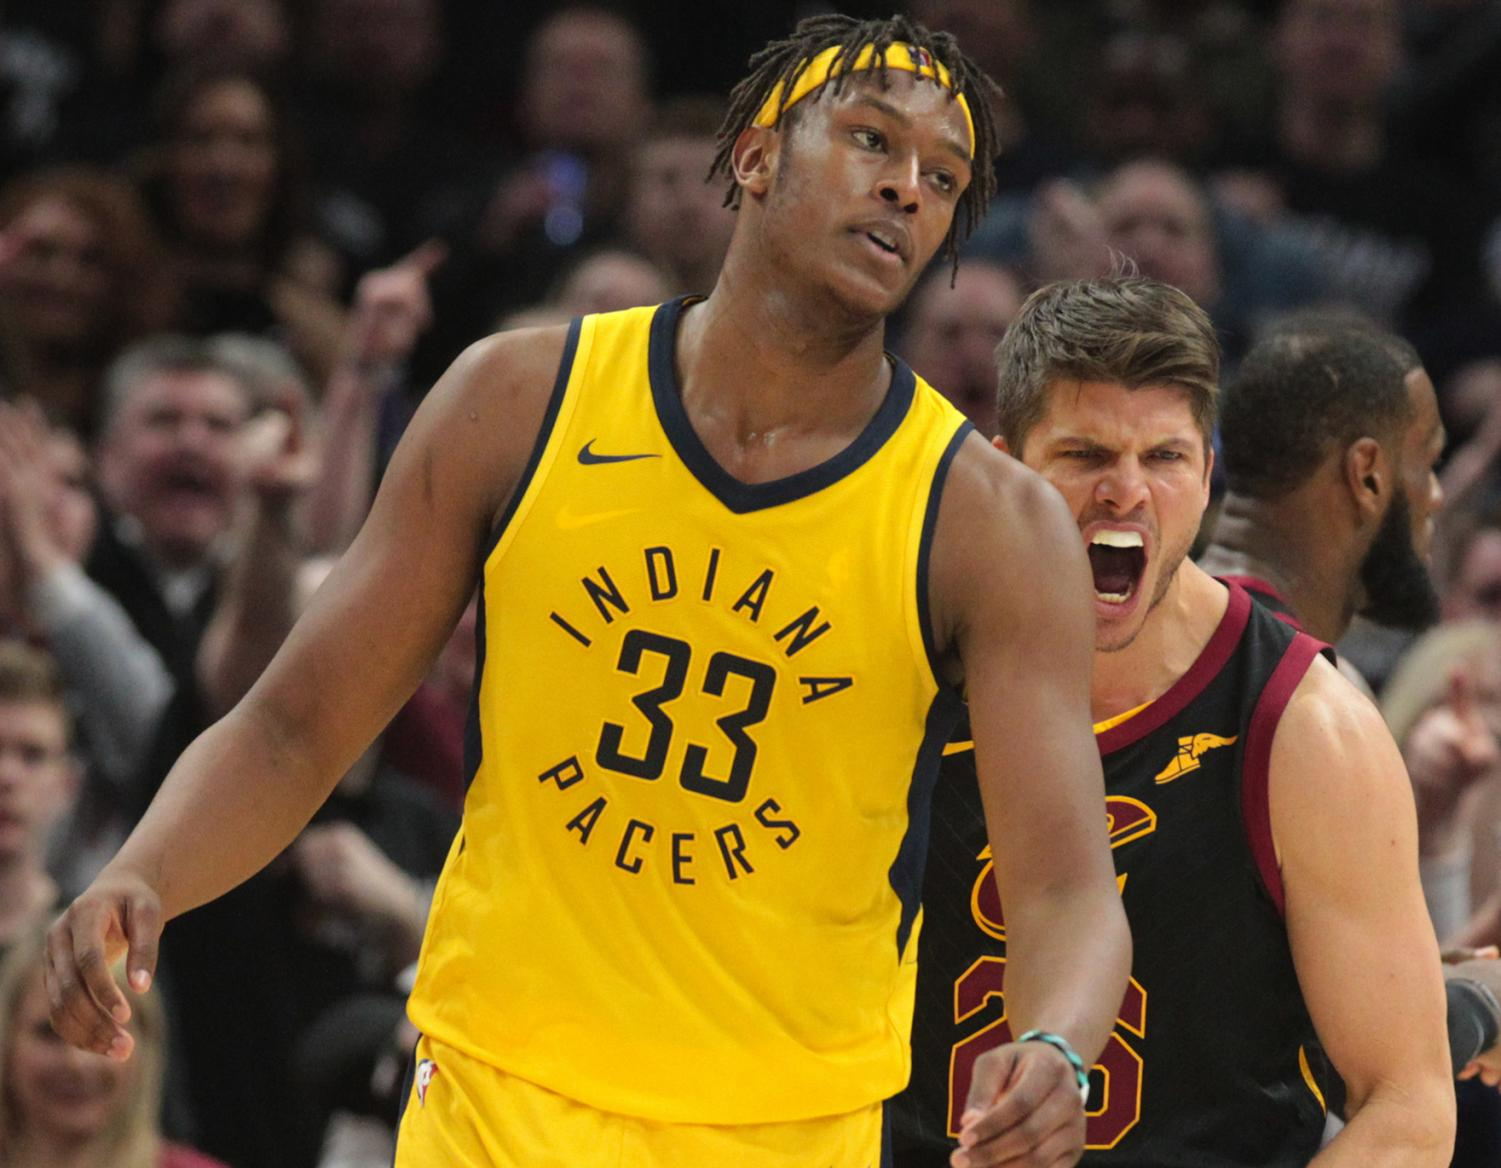 Cleveland and Indiana are locked in a first round playoff matchup with major implications to the balance of power in the conference at stake.